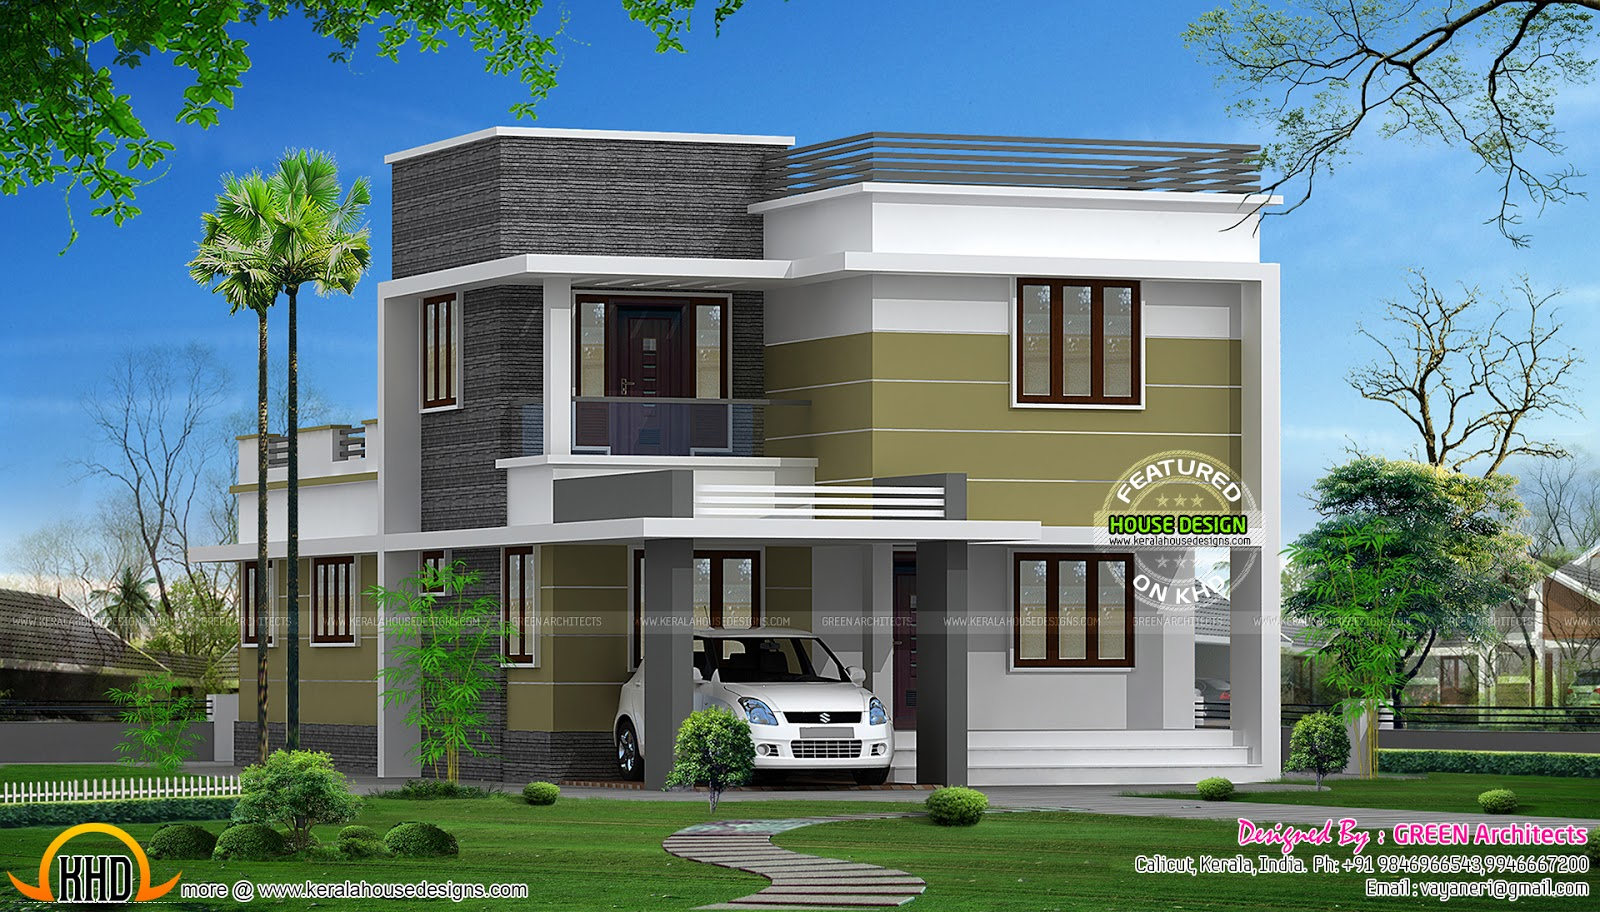 186 sq m small double storied house in kerala kerala for Beautiful small house plans in kerala